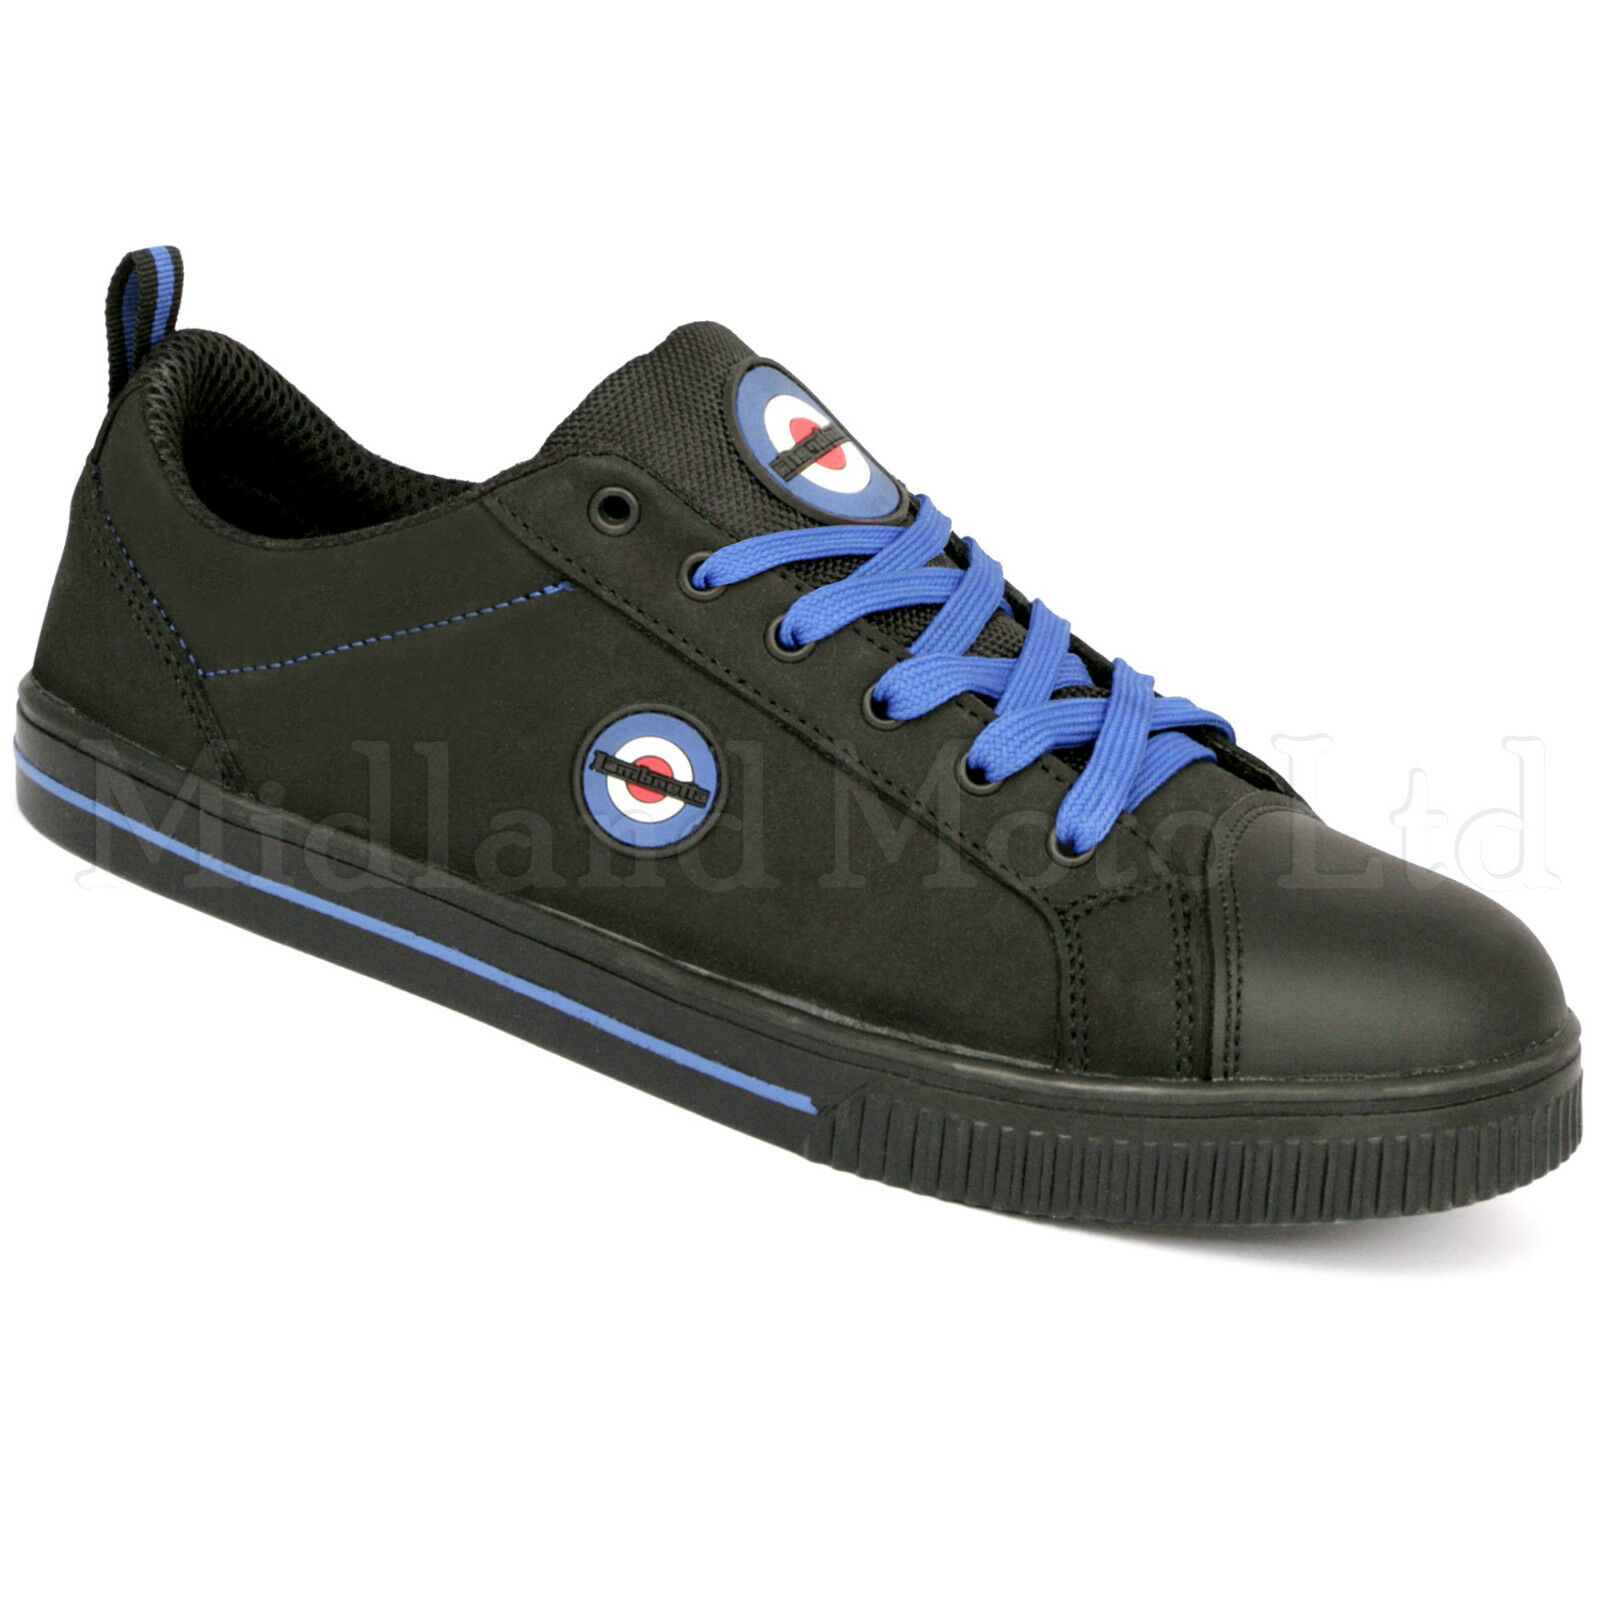 Lambretta Safety Steel Steel Safety Toe Cap Plimsoll Skater Style Schuhe. Trainers Pumps. DB002 f0a0f2